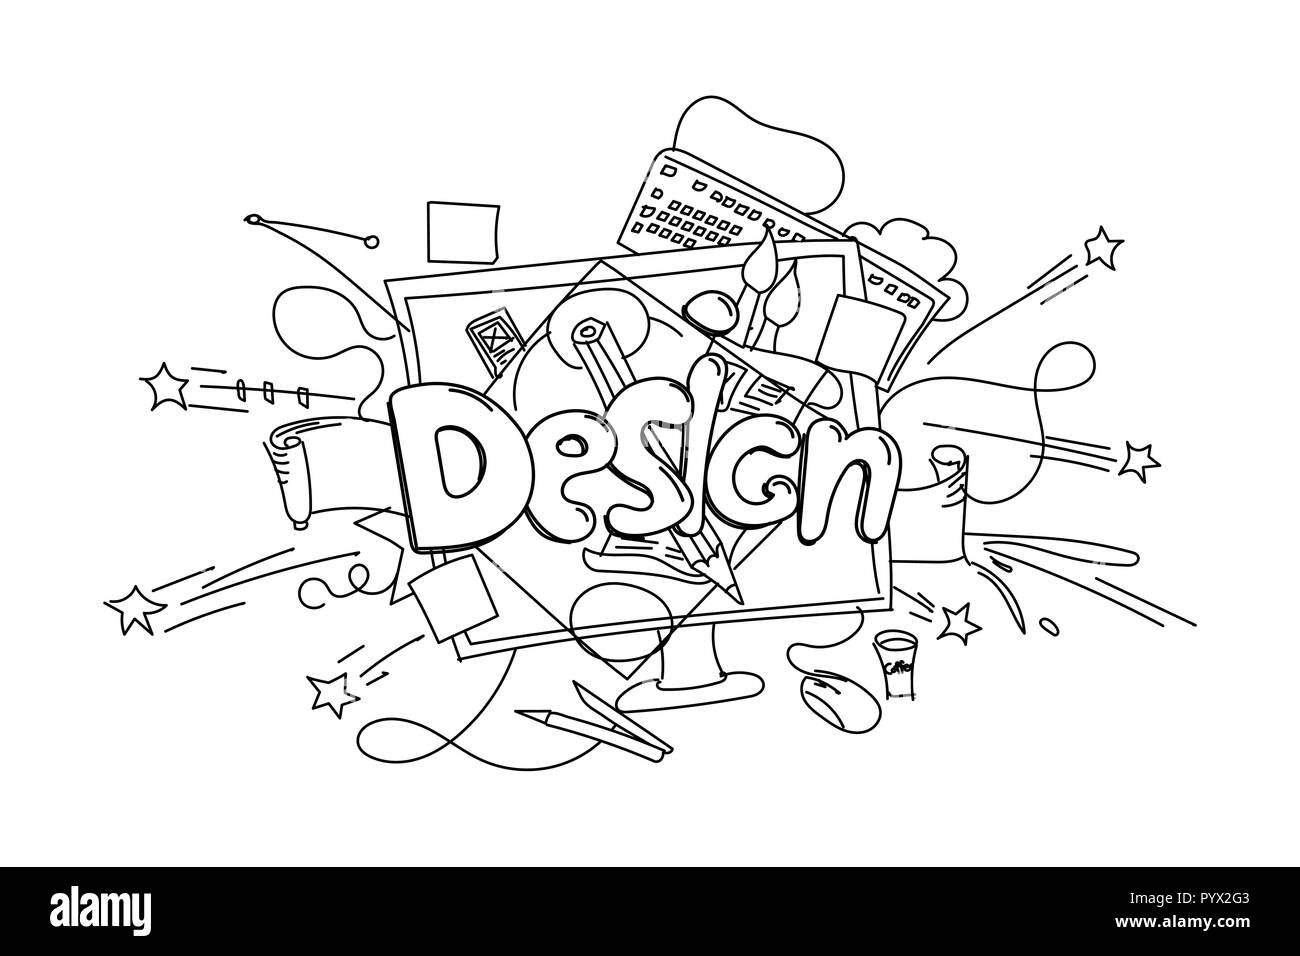 Design phrase. Vector hand drawn illustration isolated on white background Stock Vector